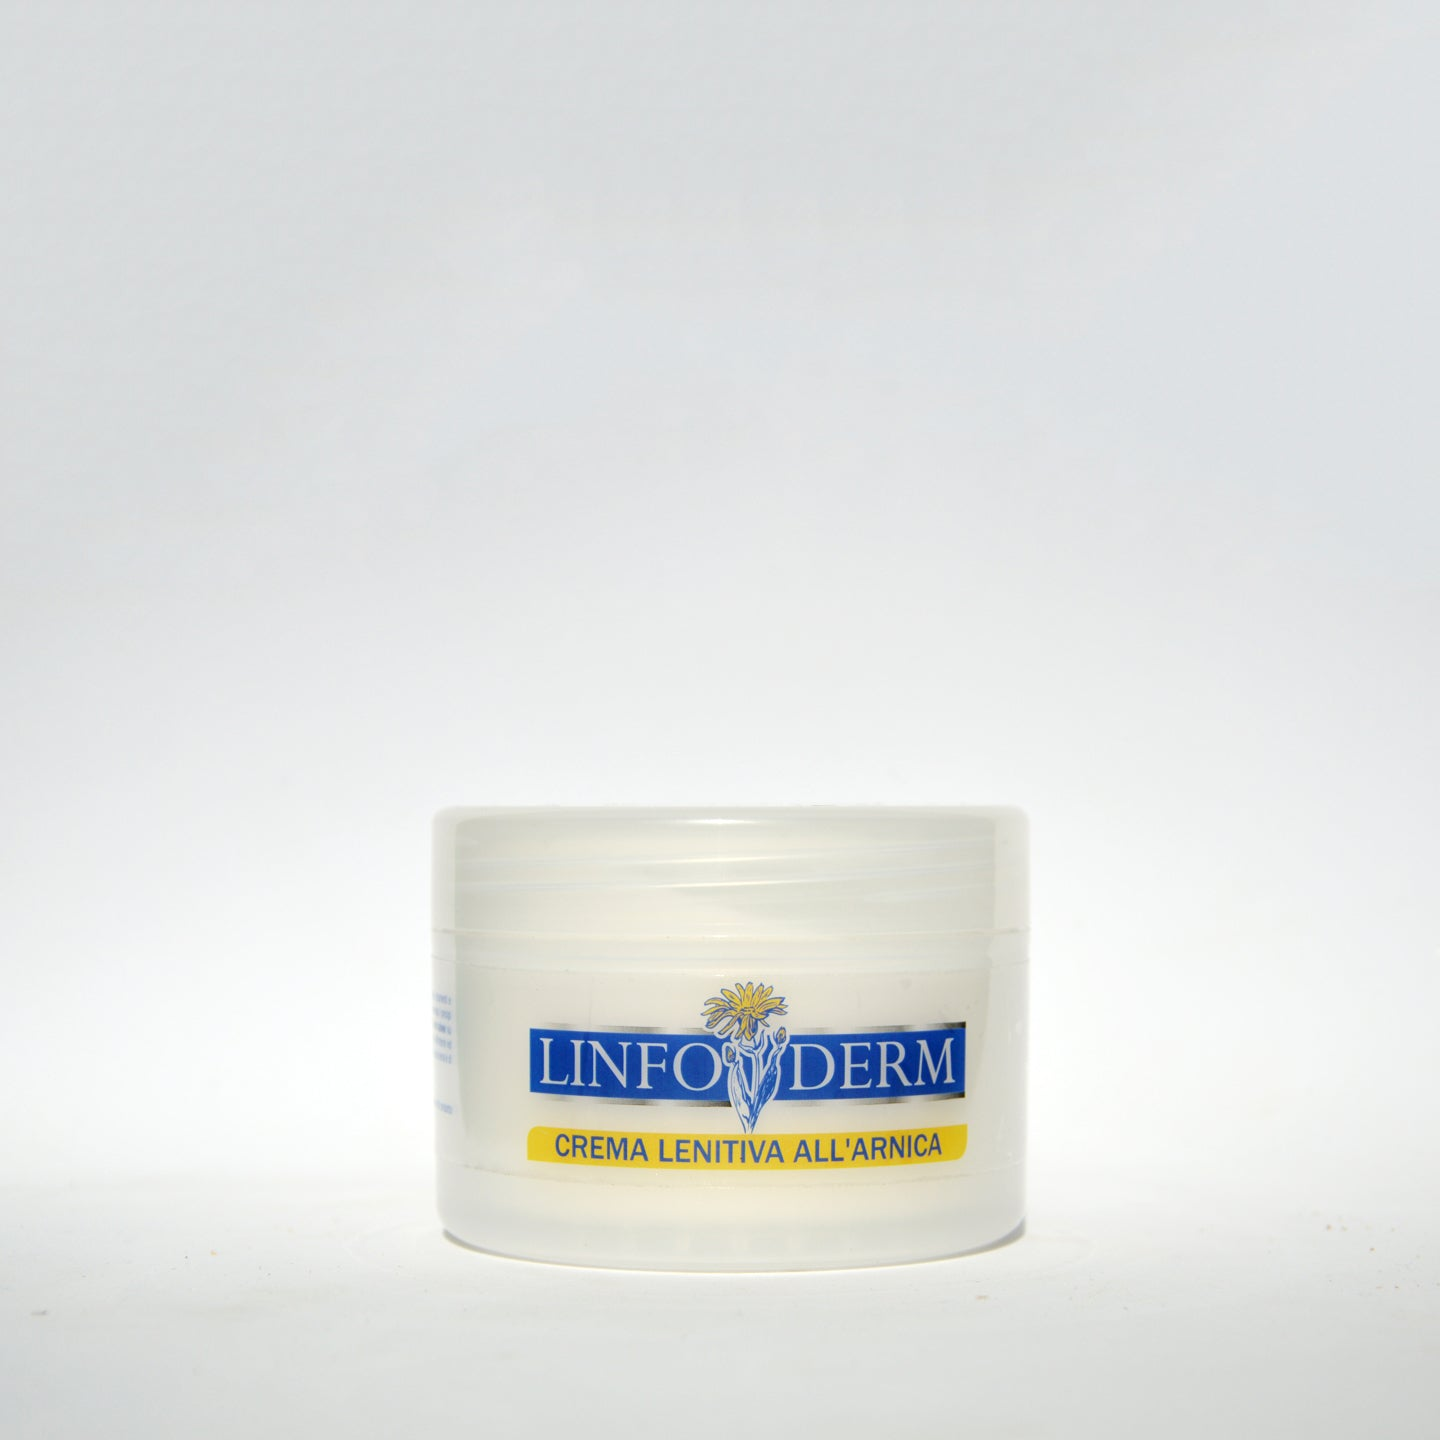 Crema Lenitiva all'Arnica (250ml) - Linfoderm